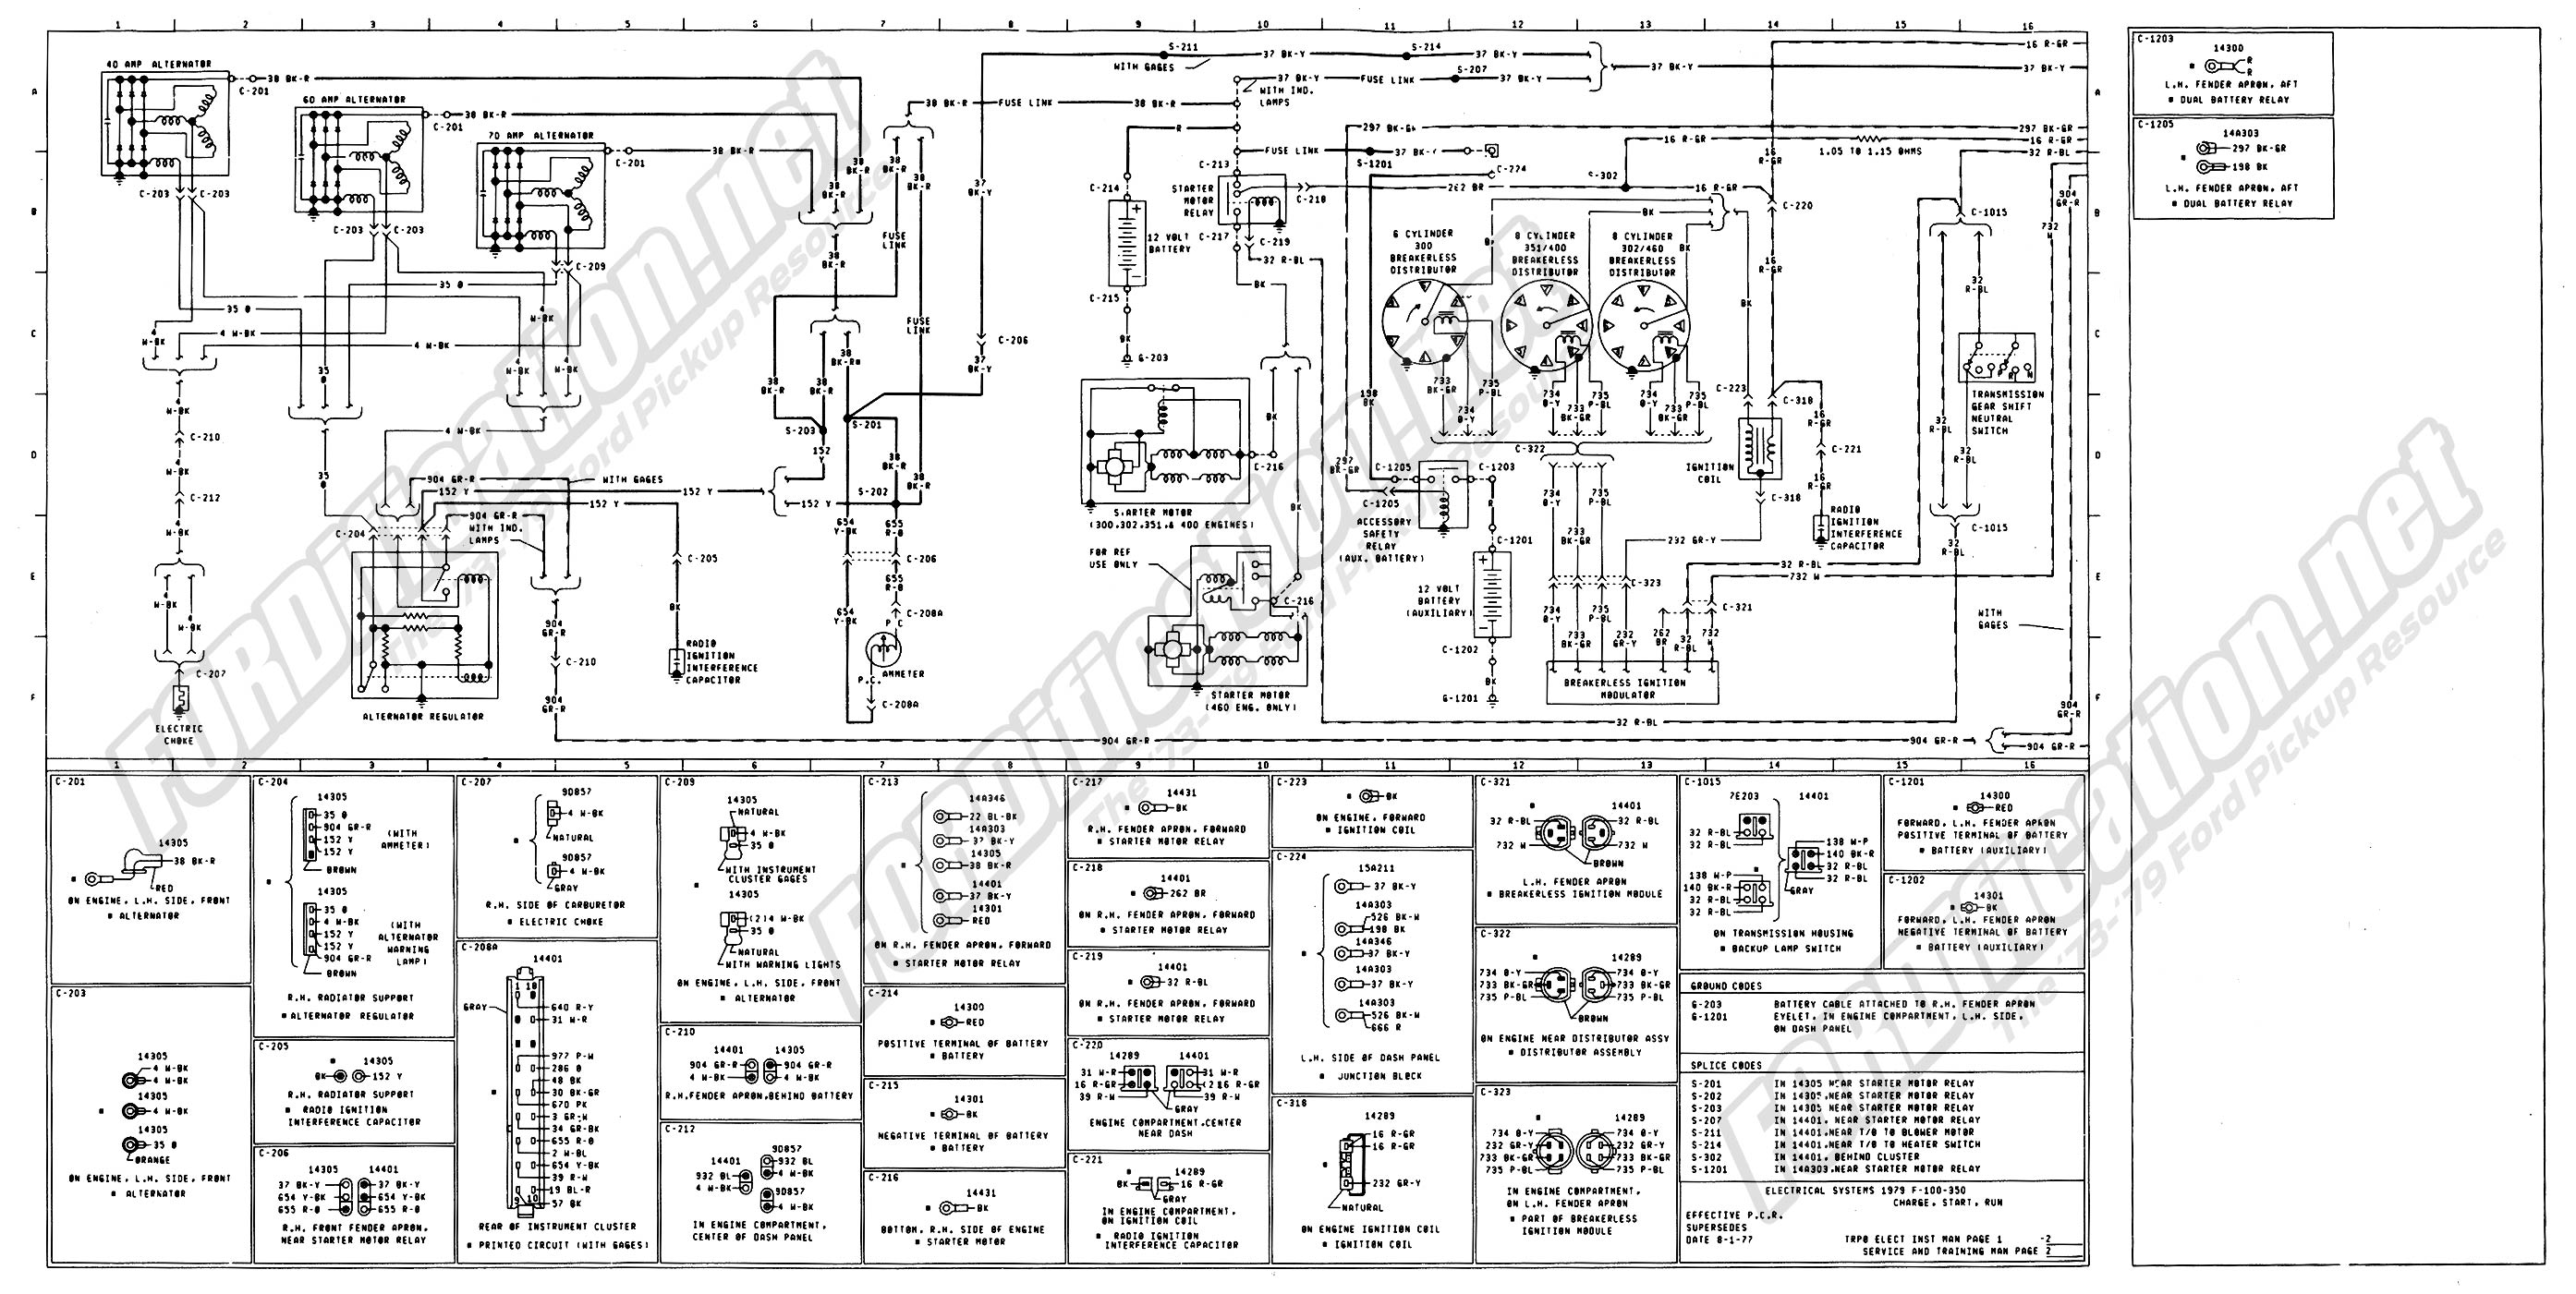 wiring_79master_2of9 1973 1979 ford truck wiring diagrams & schematics fordification net 1979 ford f150 radio wiring diagram at gsmportal.co